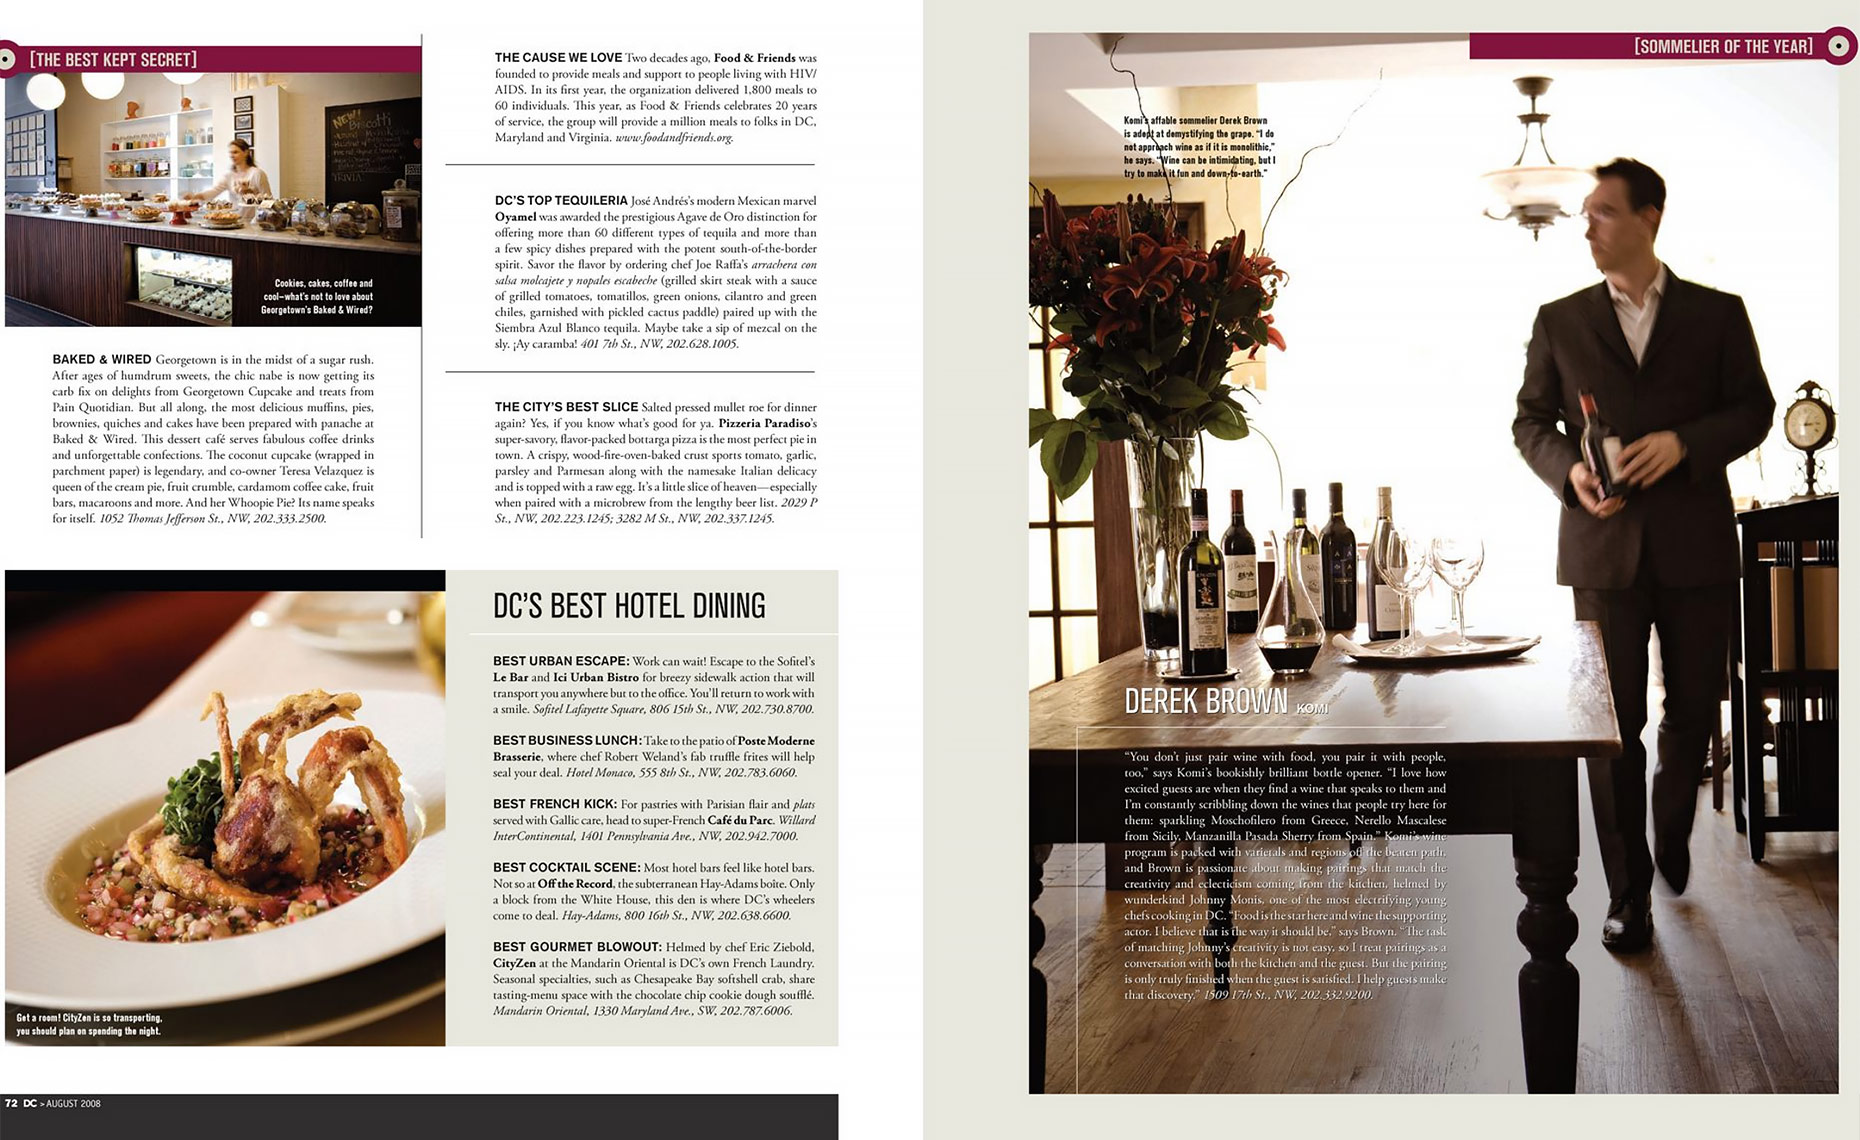 DCML-Restaurant-Issue-2008-3